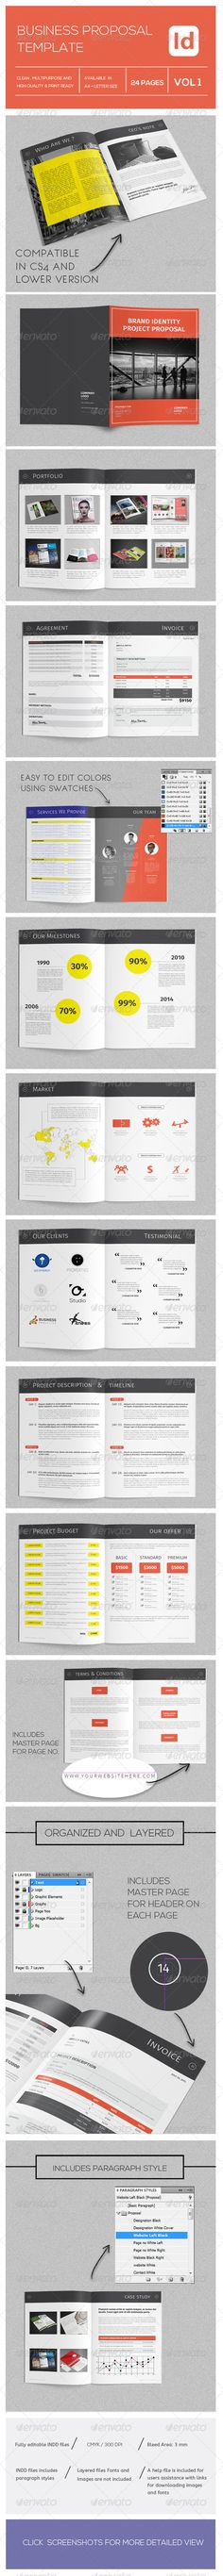 Web Design Business Proposal  Business Proposal Proposal